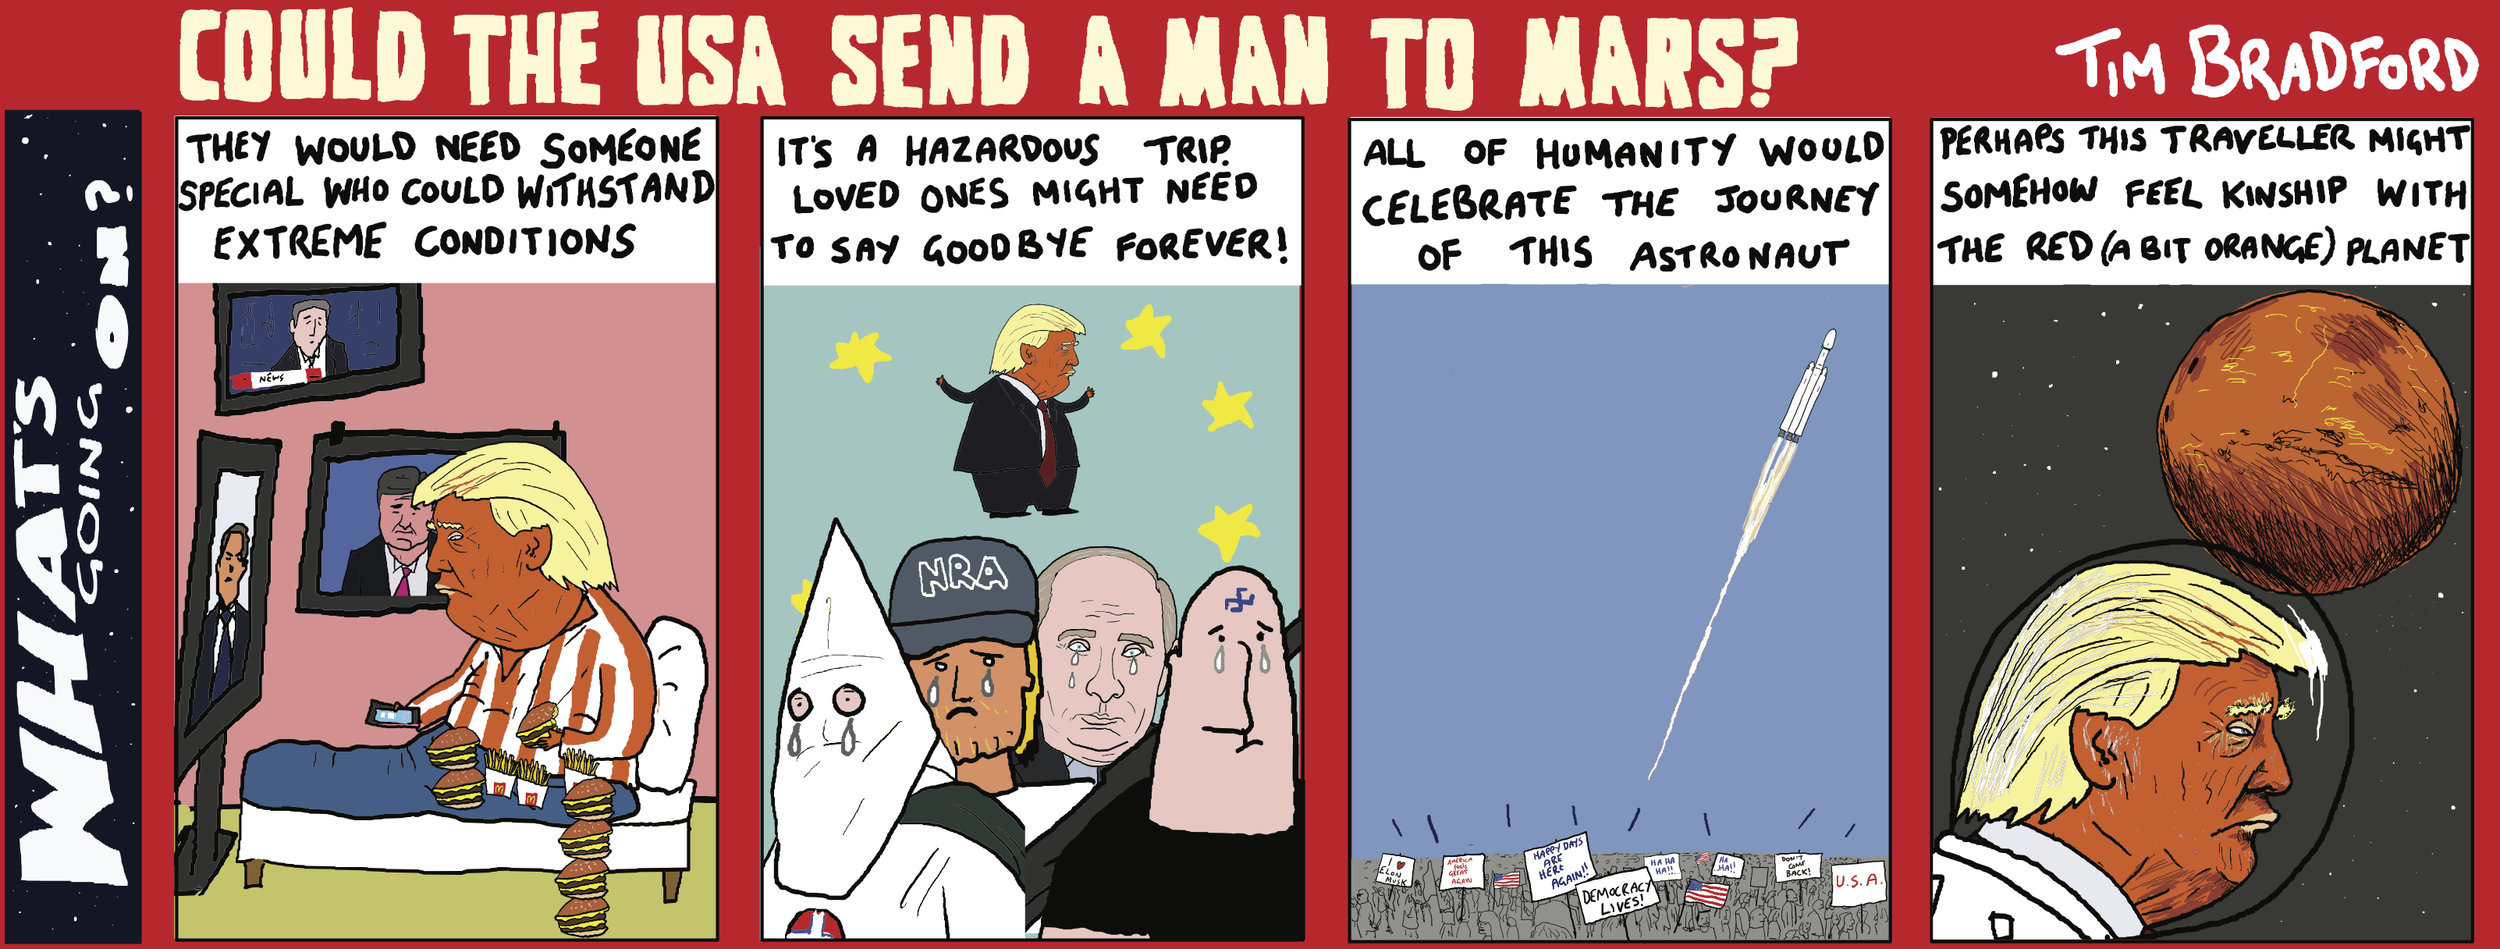 Copy of Could the USA send a man to Mars? 13/02/18